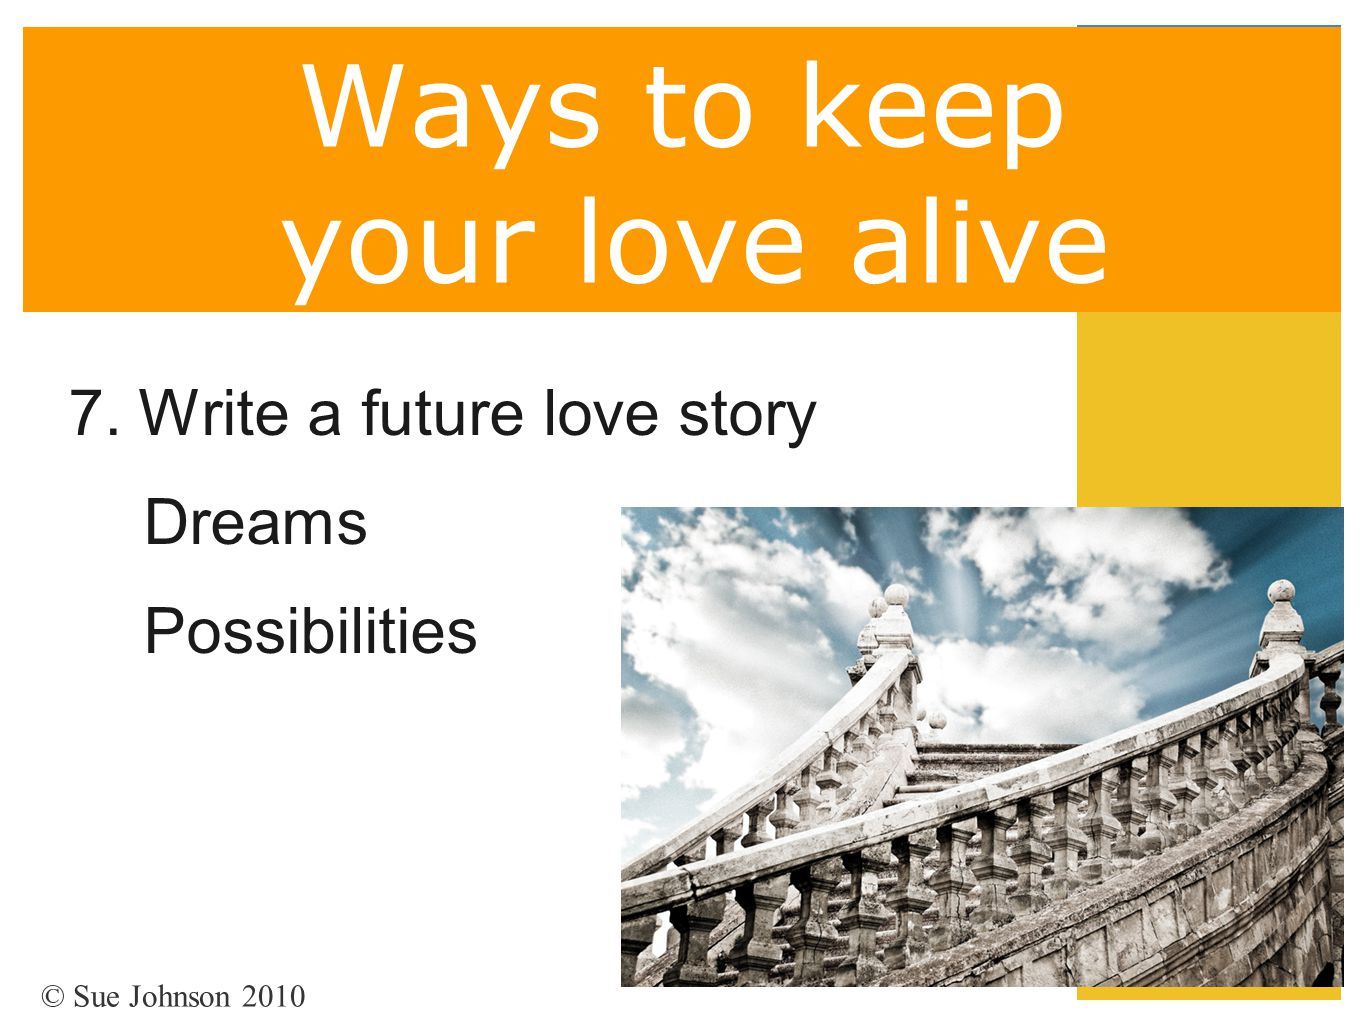 Ways to keep your love alive 7. Write a future love story Dreams Possibilities © Sue Johnson 2010